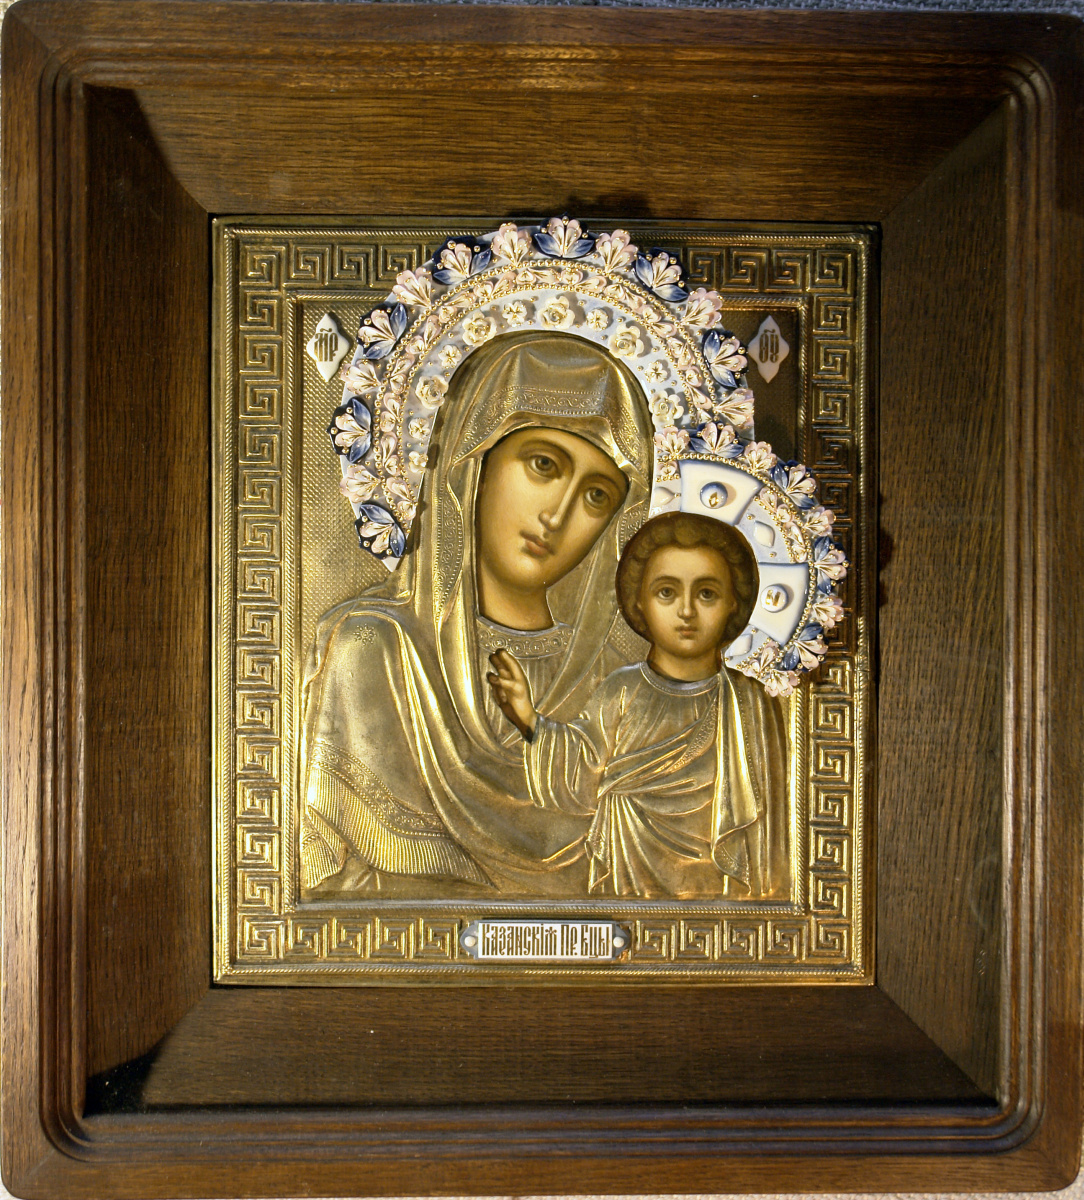 Moscow Icon Painting Workshop. Virgin of Kazan in the salary of the 19th century with porcelain crown